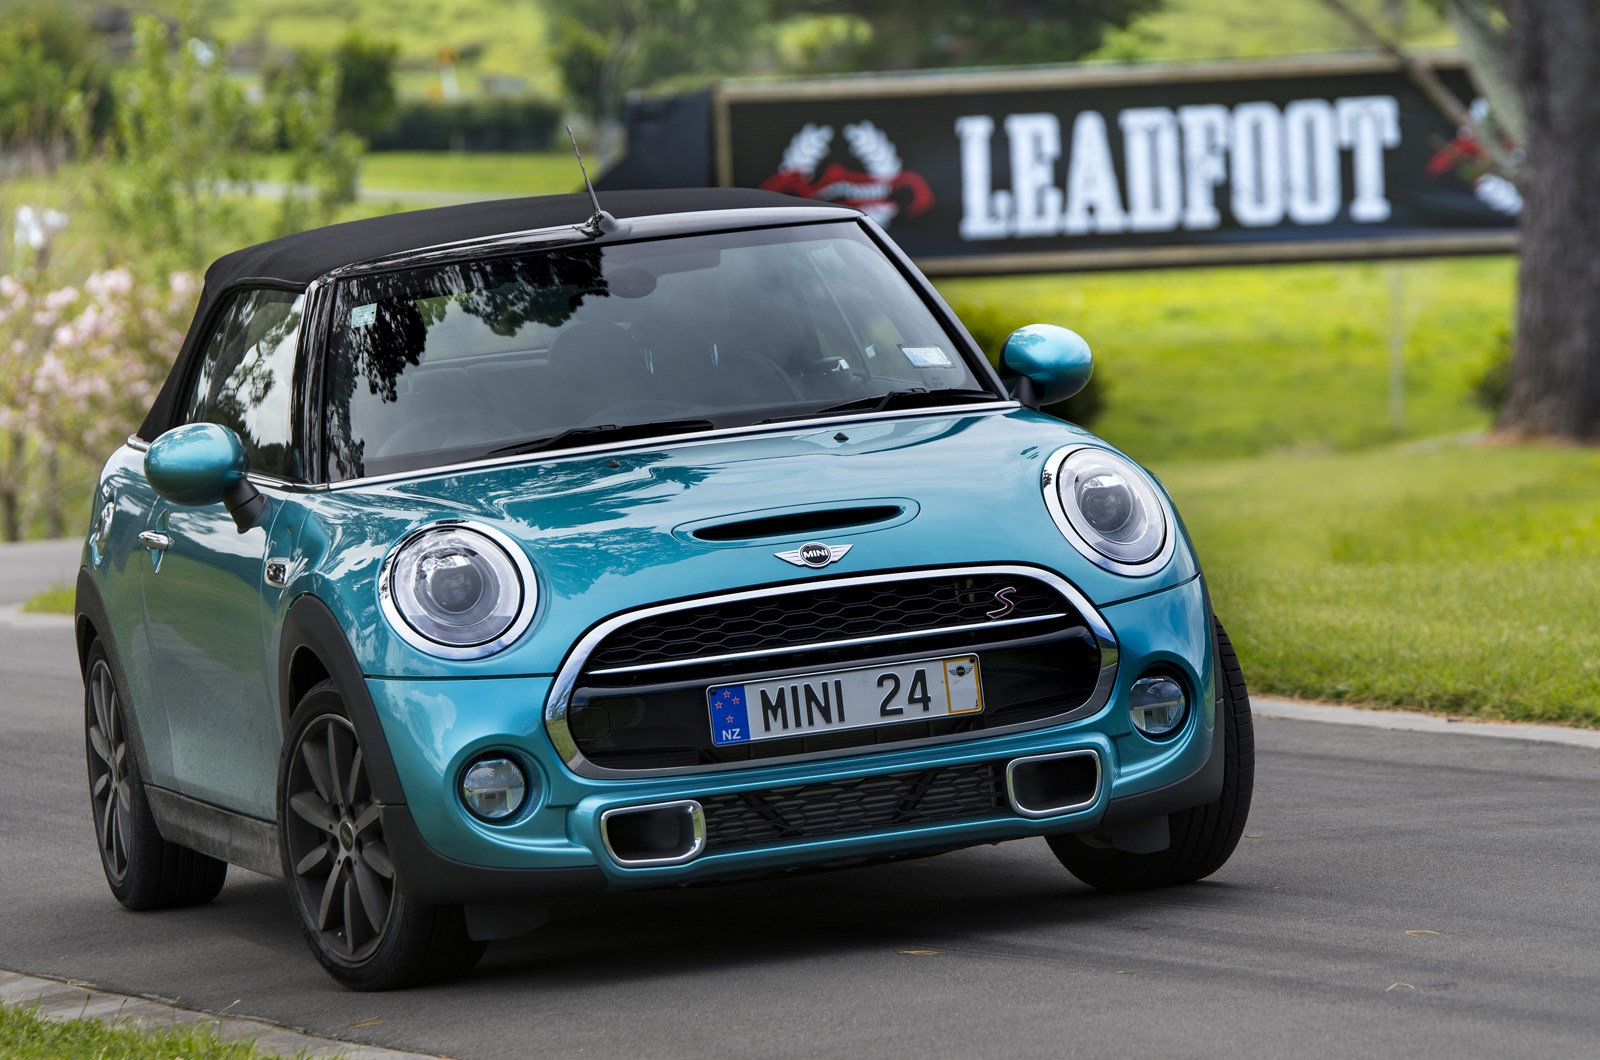 hight resolution of the performance cooper s is priced from 53 990 with my model specced up to cost 58 200 including a sports six speed automatic transmission and the